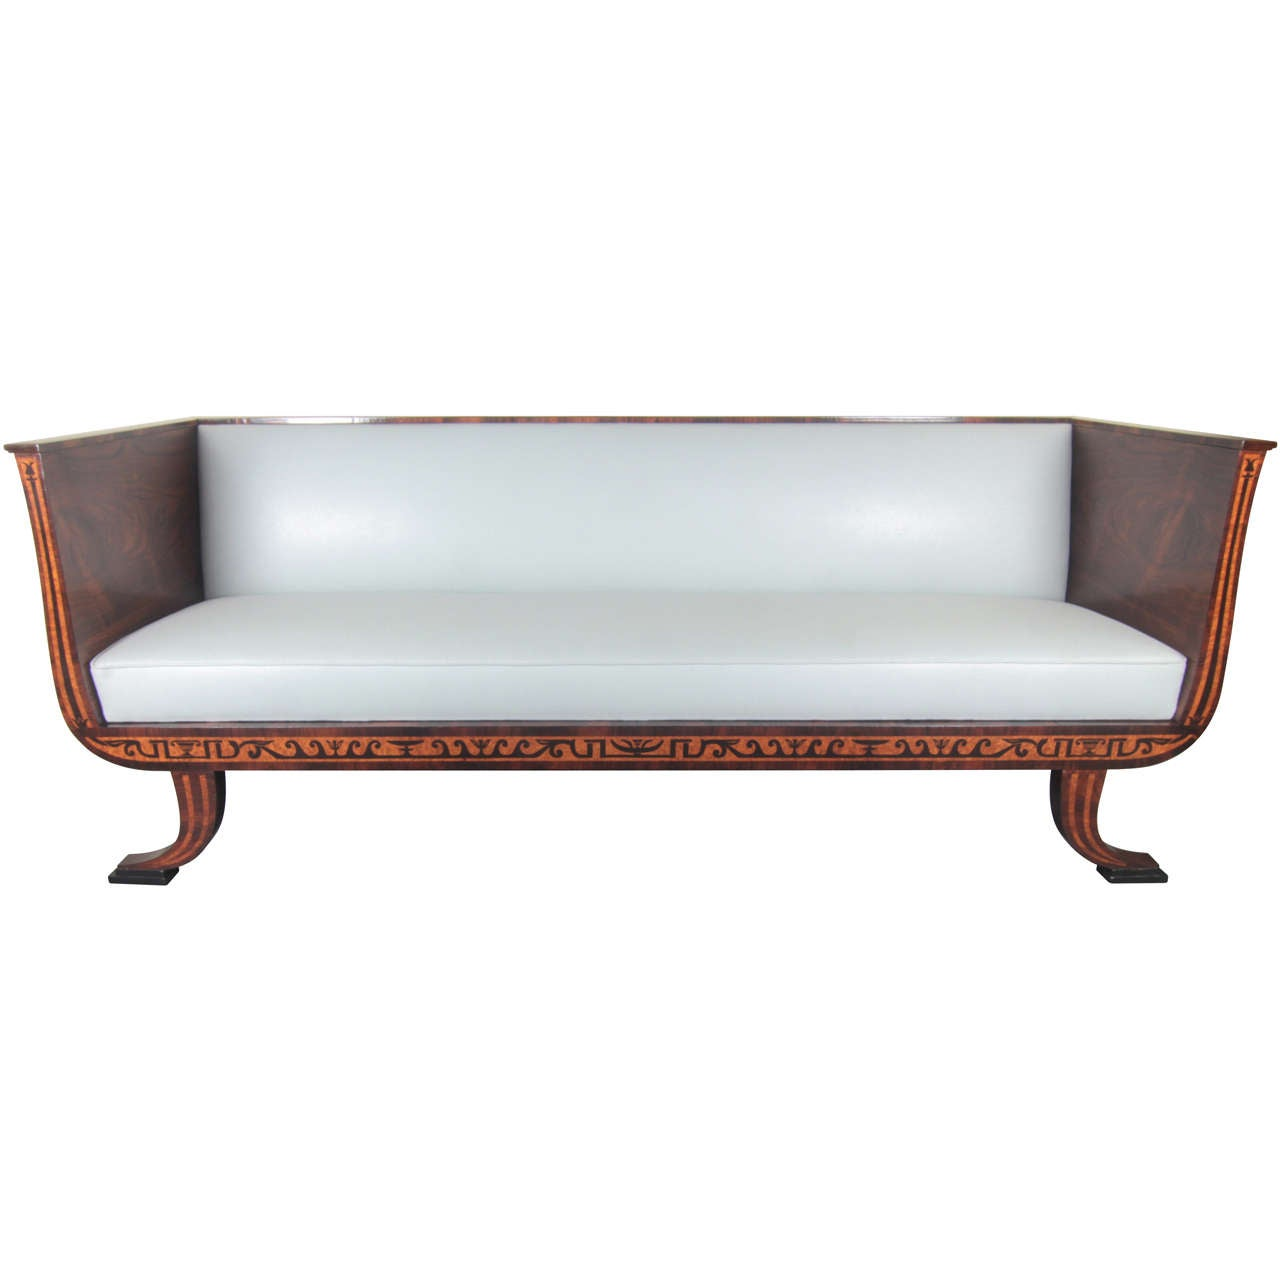 Exceptional carl malmsten sofa at 1stdibs Carl malmsten sofa